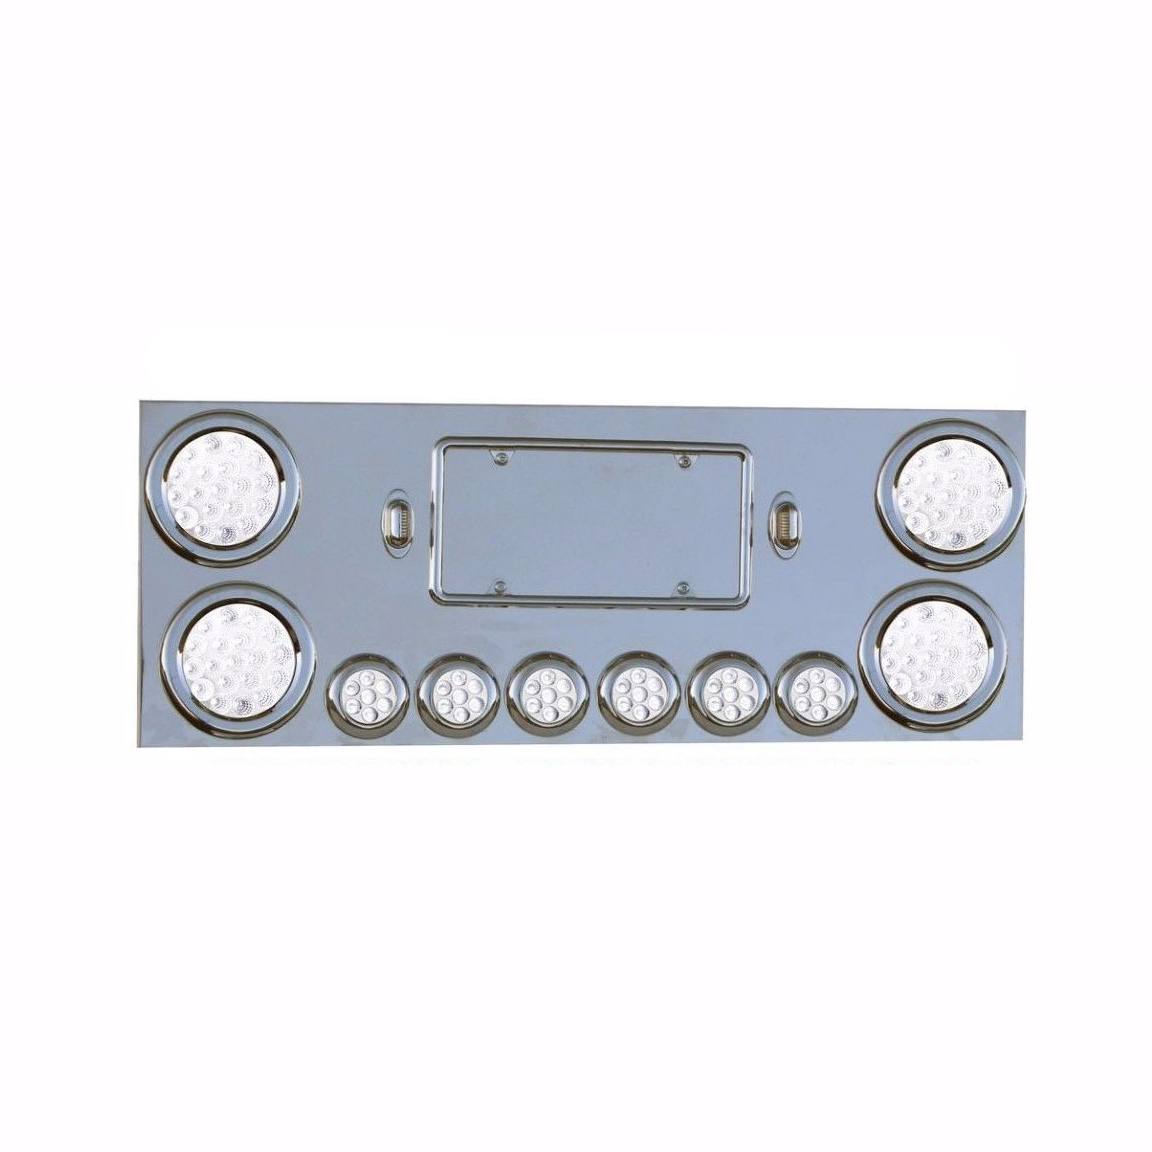 Rear Center Panel Stainless Steel with Dual Function, 40 LED Lights for Semi Truck